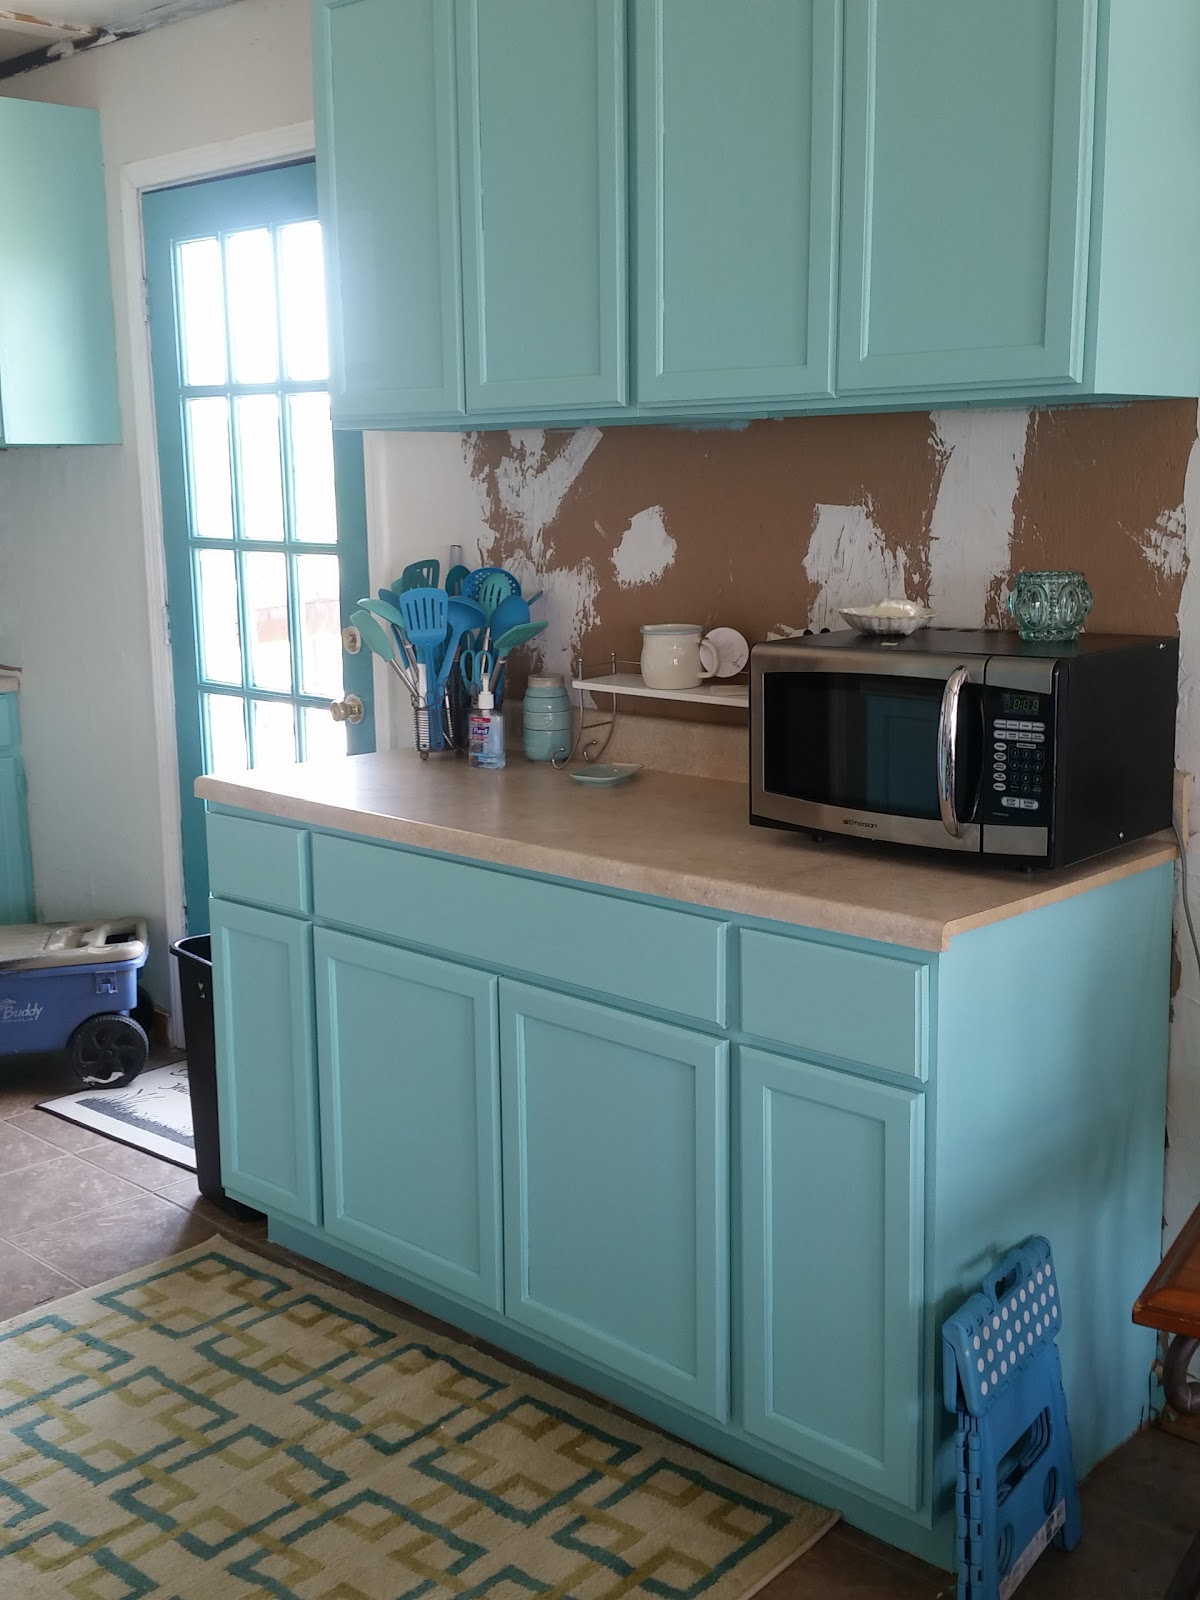 Texasdaisey Creations: Lakehouse Kitchen Remodel Update